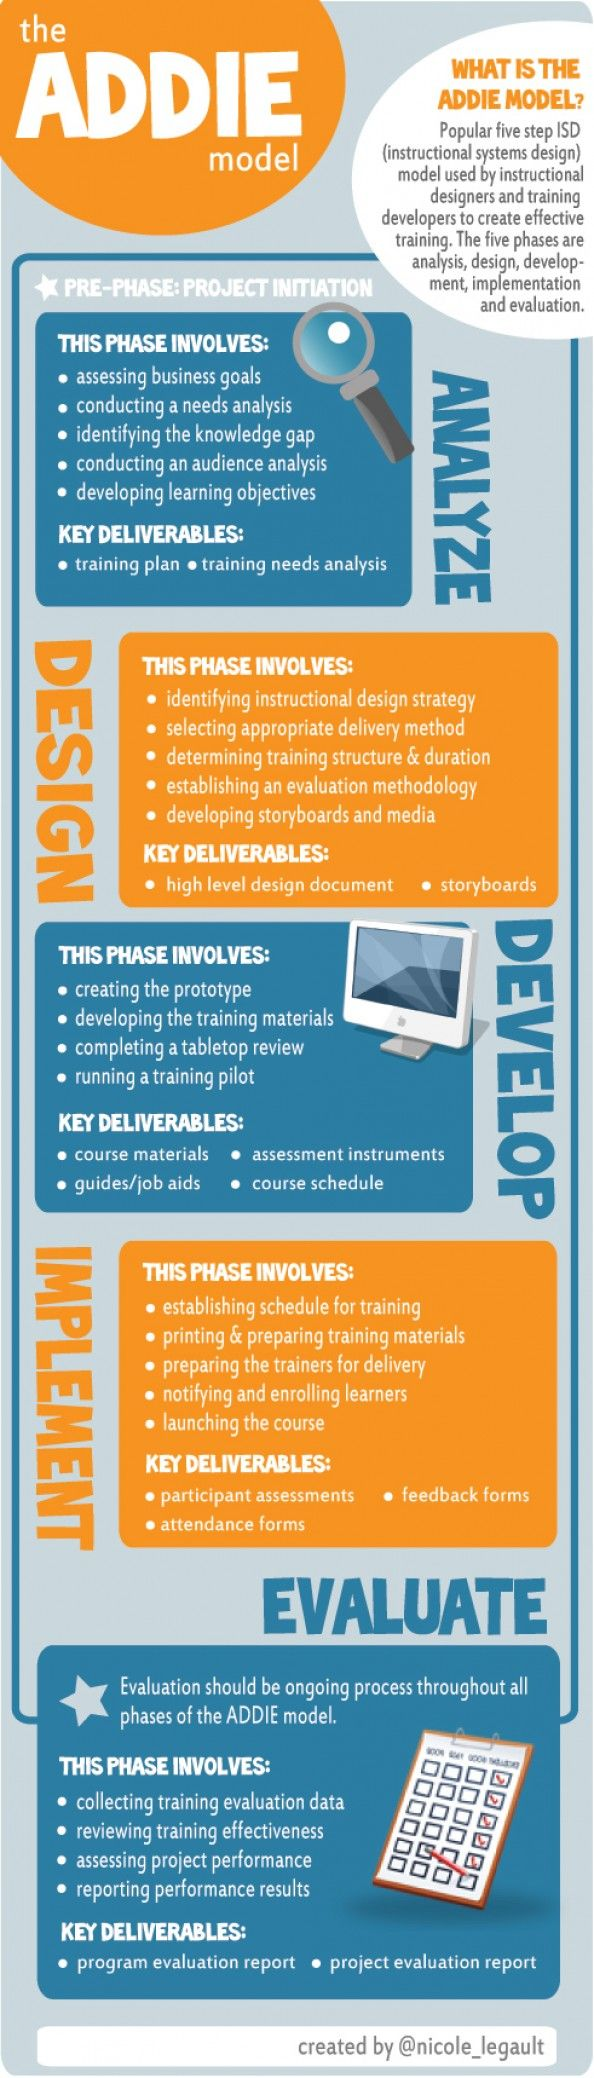 The ADDIE Model: A Visual Representation | The 5 phases & key deliverables of the ADDIE model.